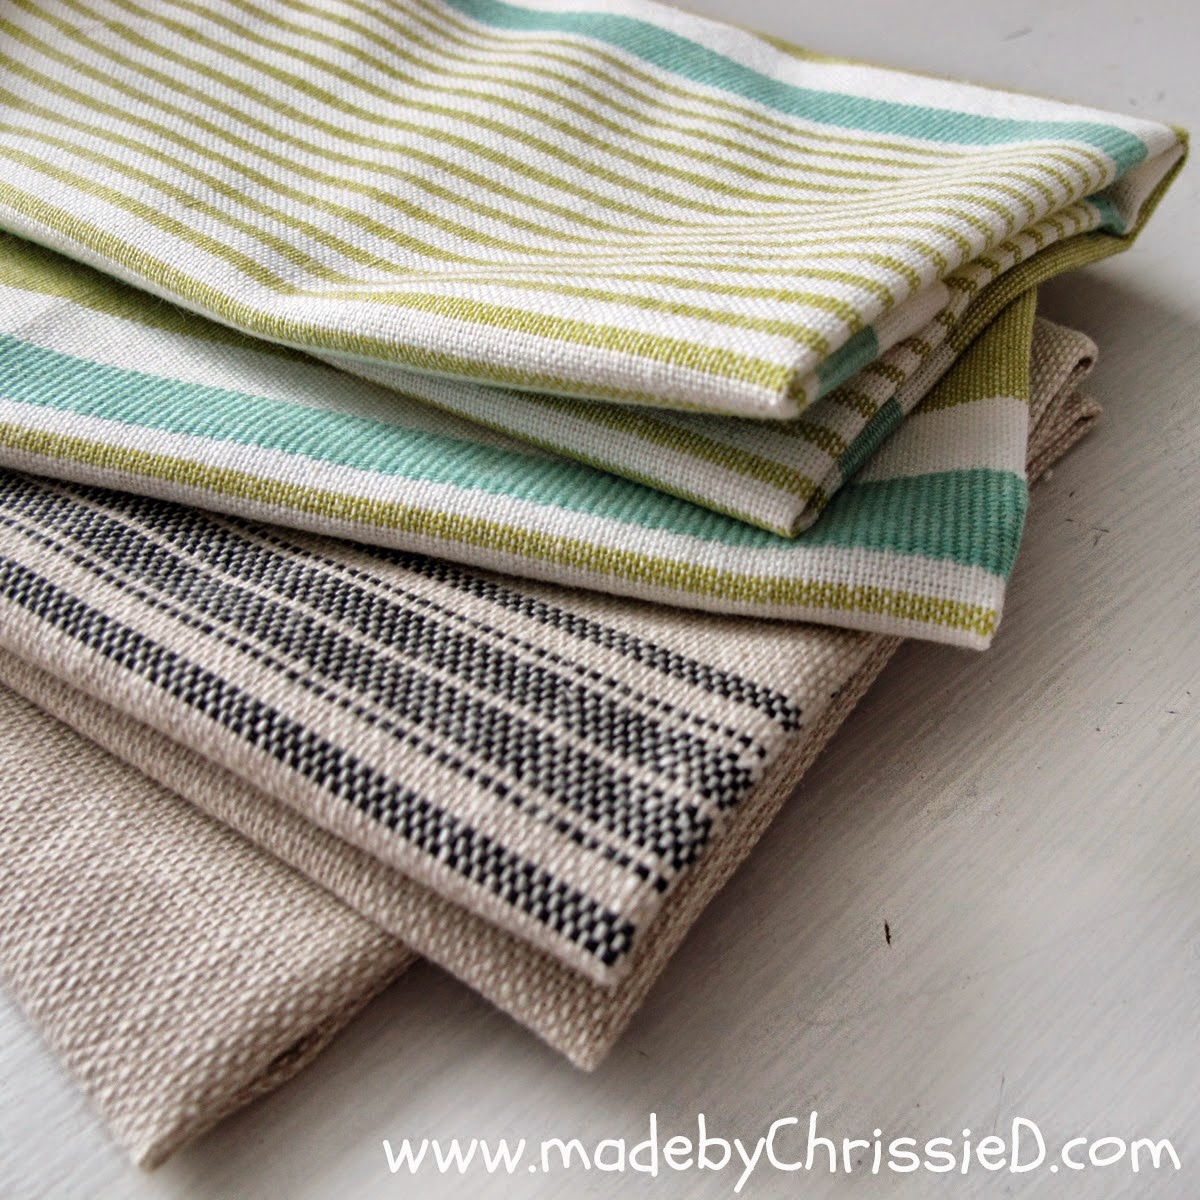 http://madebychrissied.blogspot.com/2015/02/Super-Easy-Fast-Dish-Towel-Tute.html